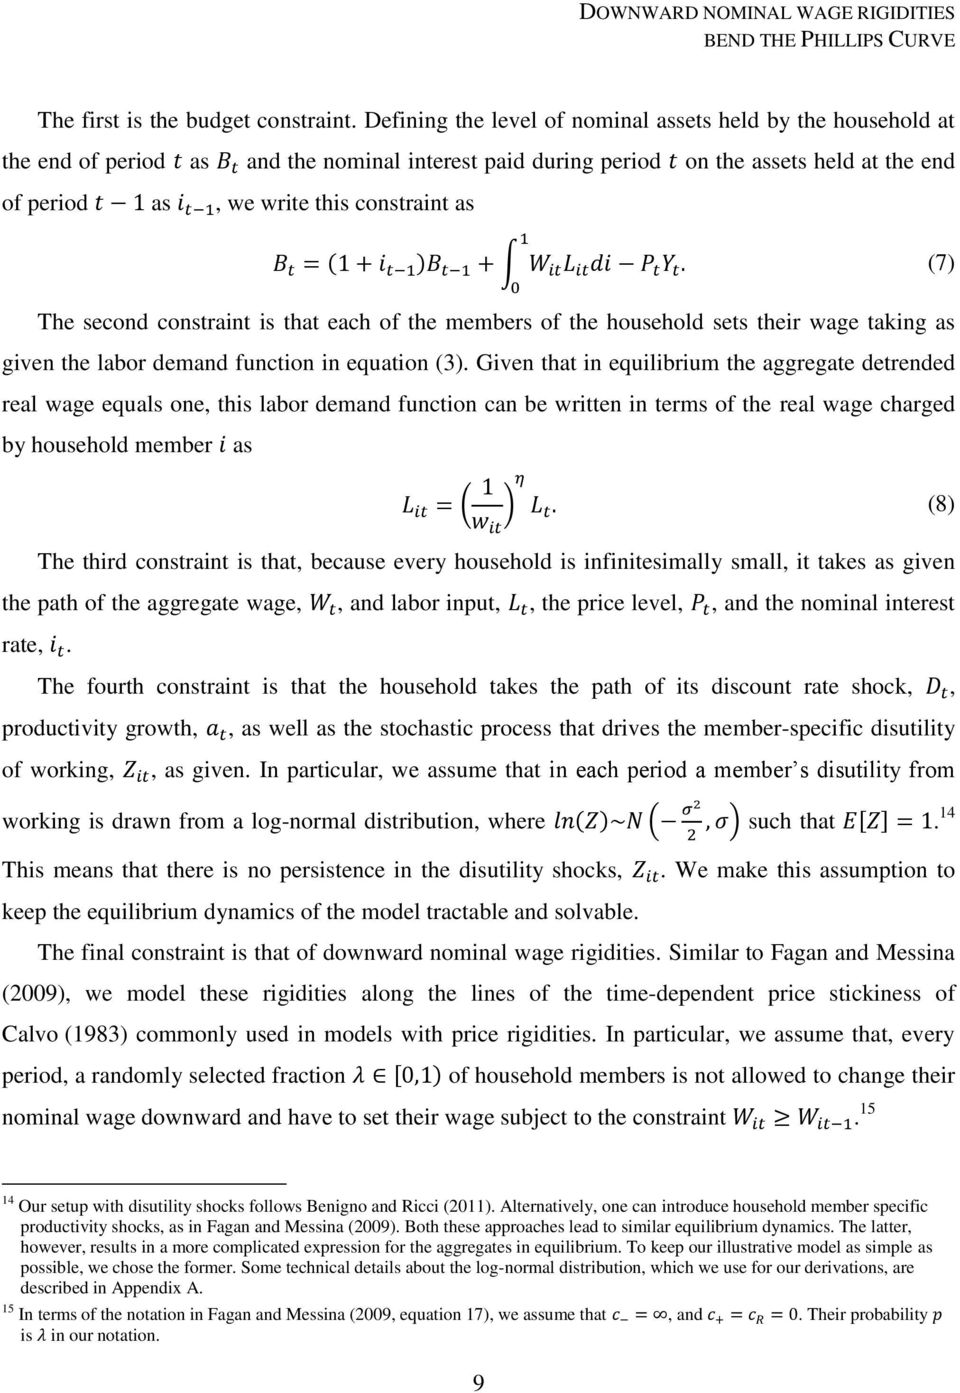 (7) The second constraint is that each of the members of the household sets their wage taking as given the labor demand function in equation (3).